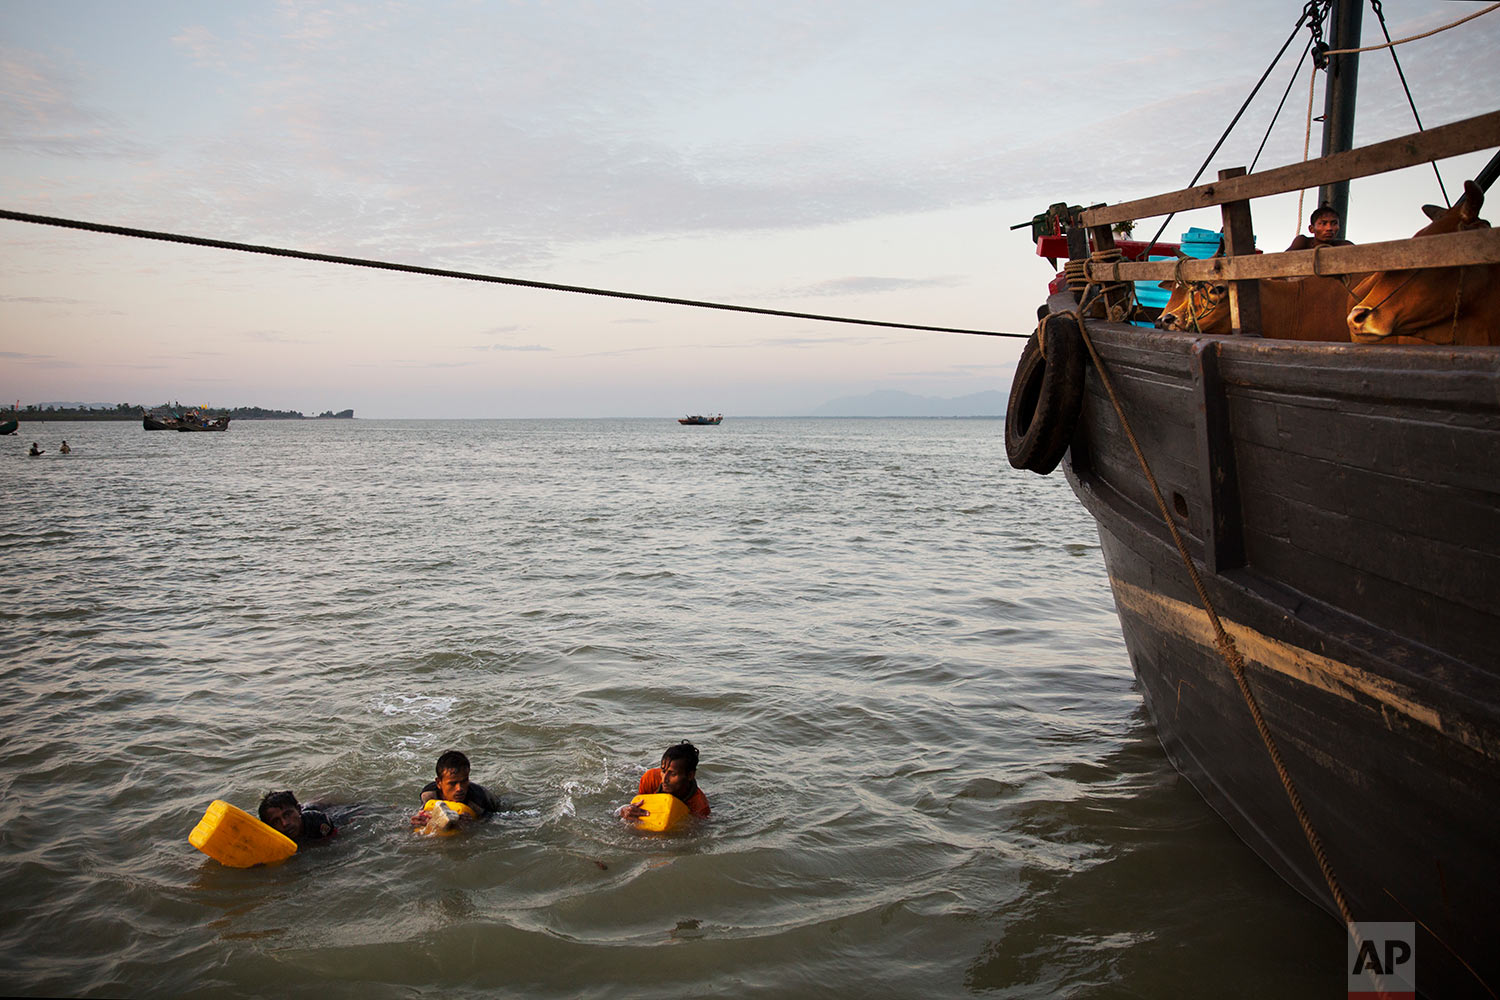 In this Nov. 4, 2017, photo, Rohingya Muslims use yellow plastic drums as flotation devices as they arrive at Shah Porir Dwip, Bangladesh, after swimming the Naf river. The Naf river is a natural border between Myanmar and Bangladesh. The boys stepped into the water just as the current started to shift toward Bangladesh, tied together with ropes in groups of three. (AP Photo/Bernat Armangue)